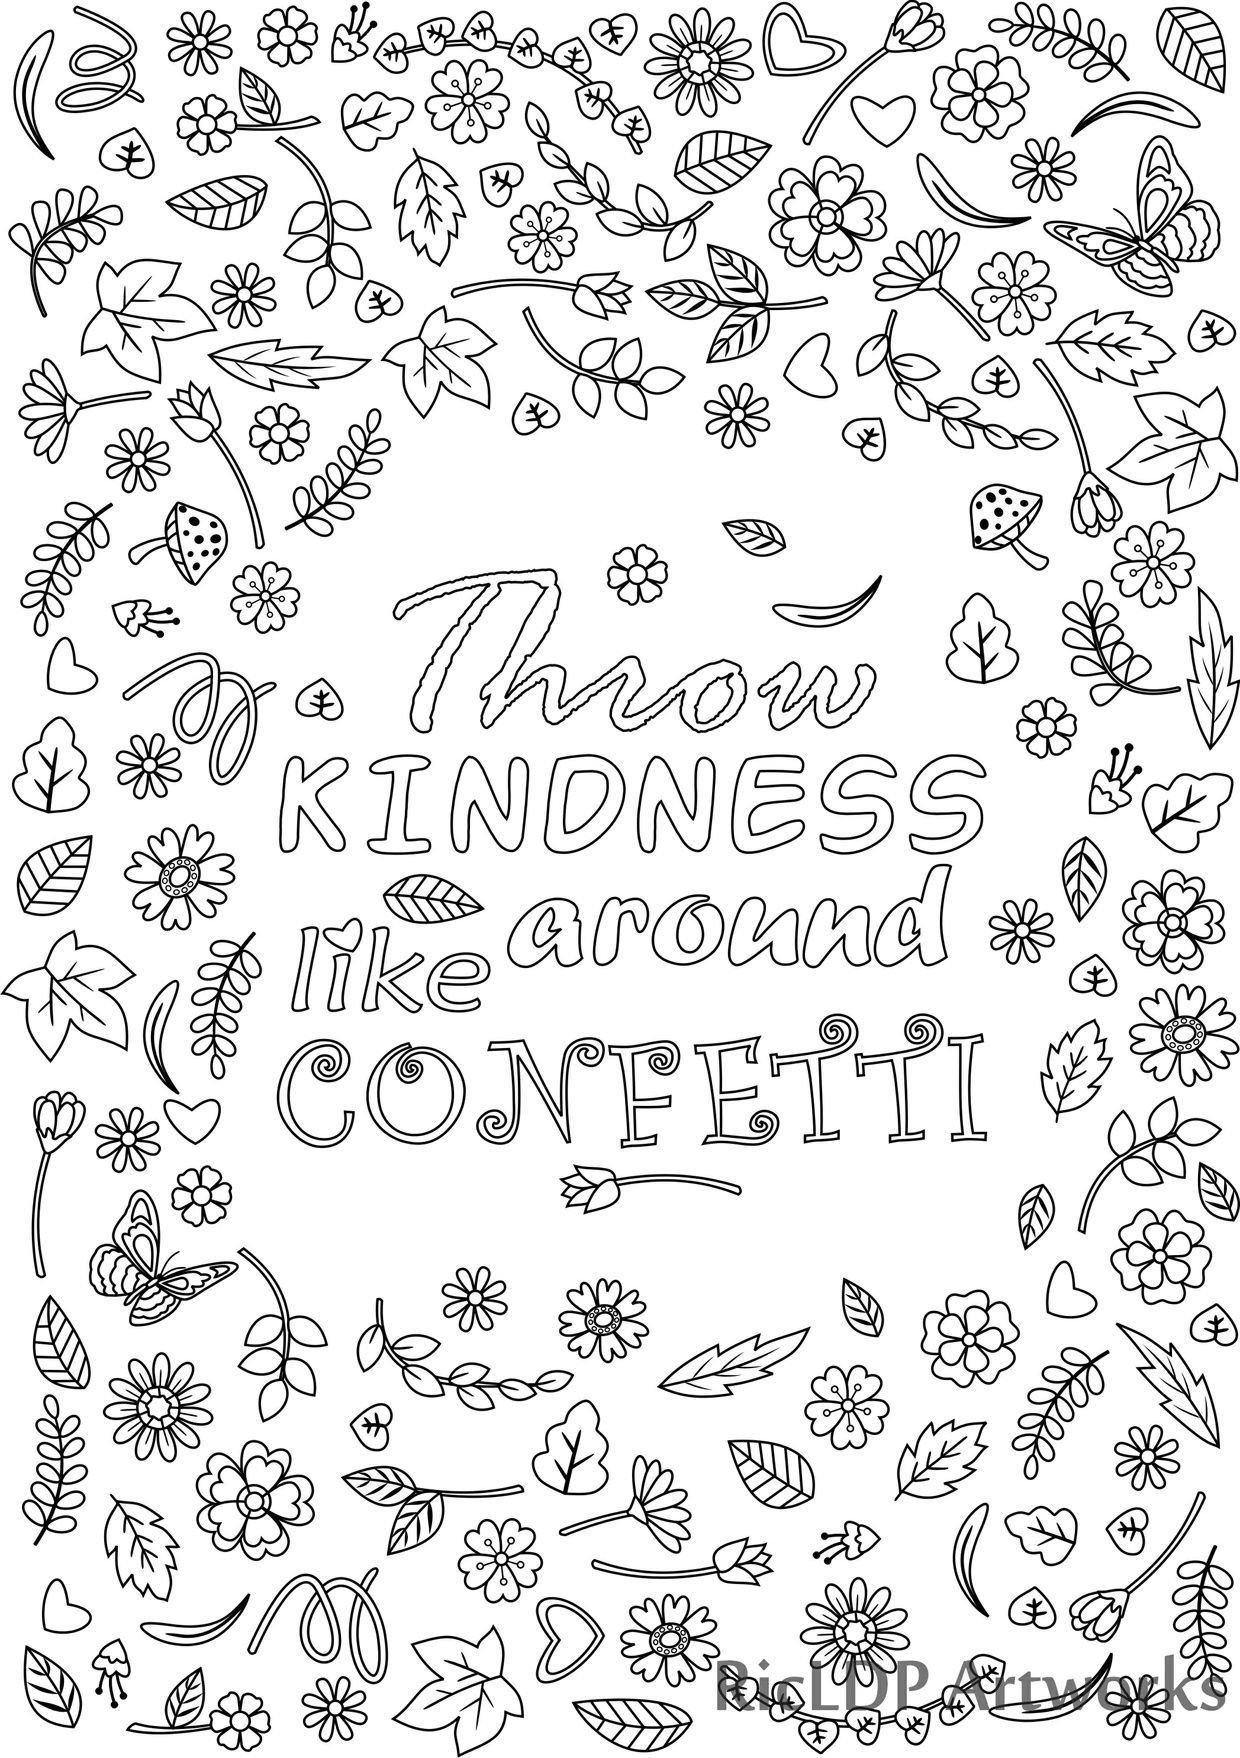 Throw Kindness Around Like Confetti Coloring Page For Etsy In 2021 Quote Coloring Pages Coloring Pages For Grown Ups Doodle Pages